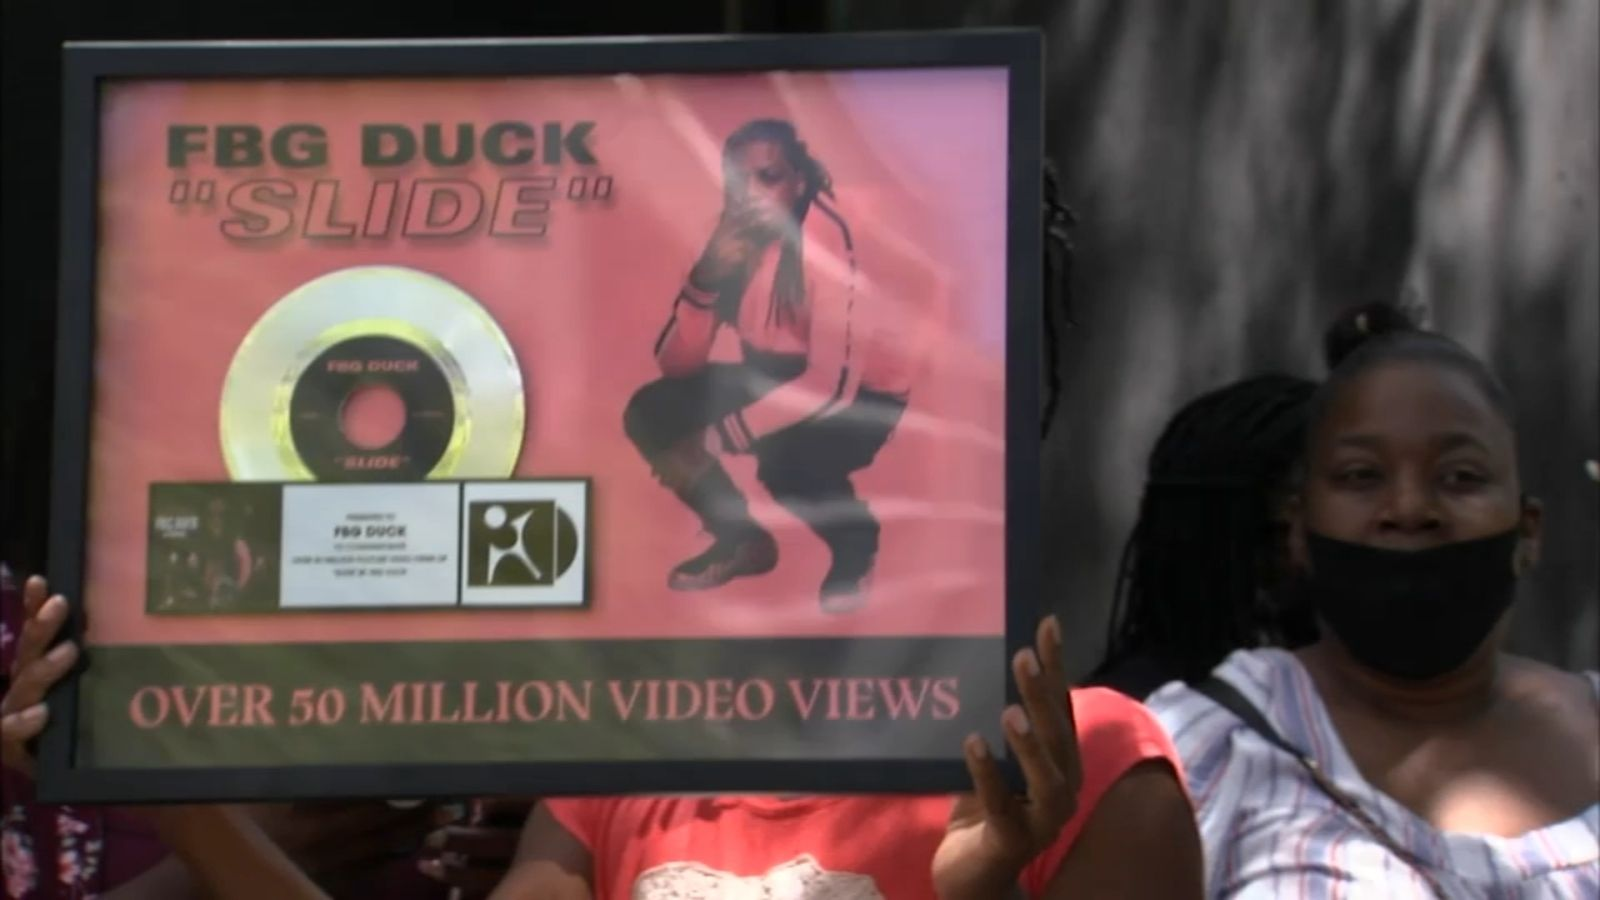 FBG Duck death: 5 charged in Gold Coast shooting of Chicago rapper